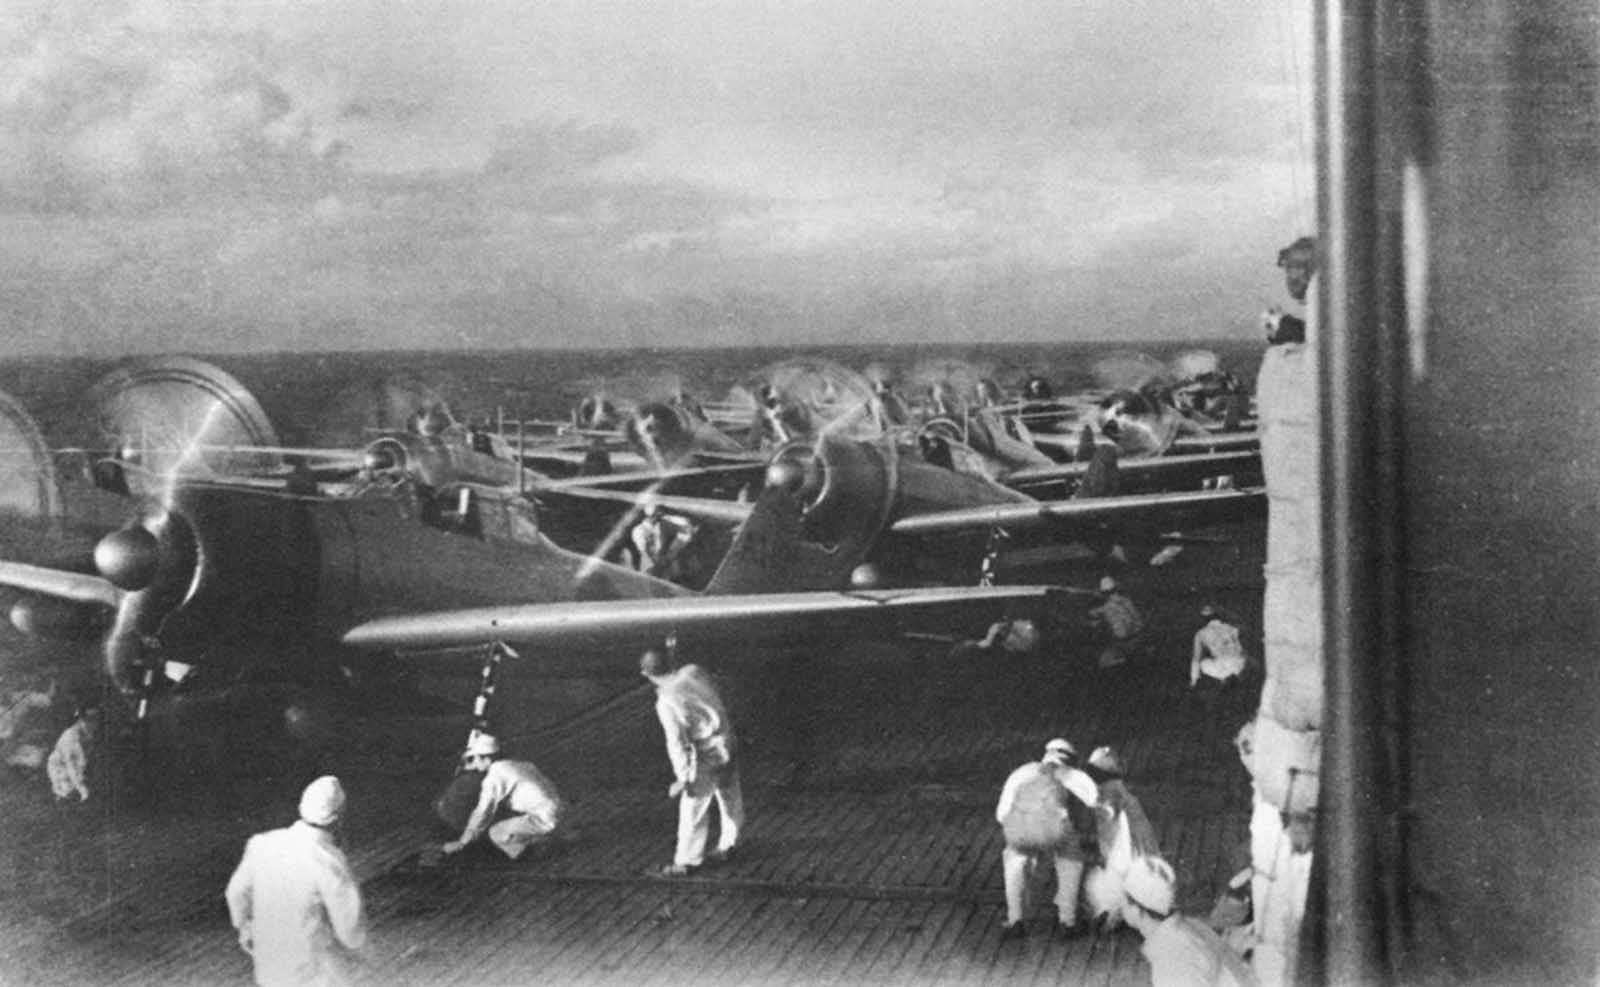 Aircraft prepare to launch from the Imperial Japanese Navy aircraft carrier Akagi during the December 7, 1941 attack on Pearl Harbor, Hawaii.